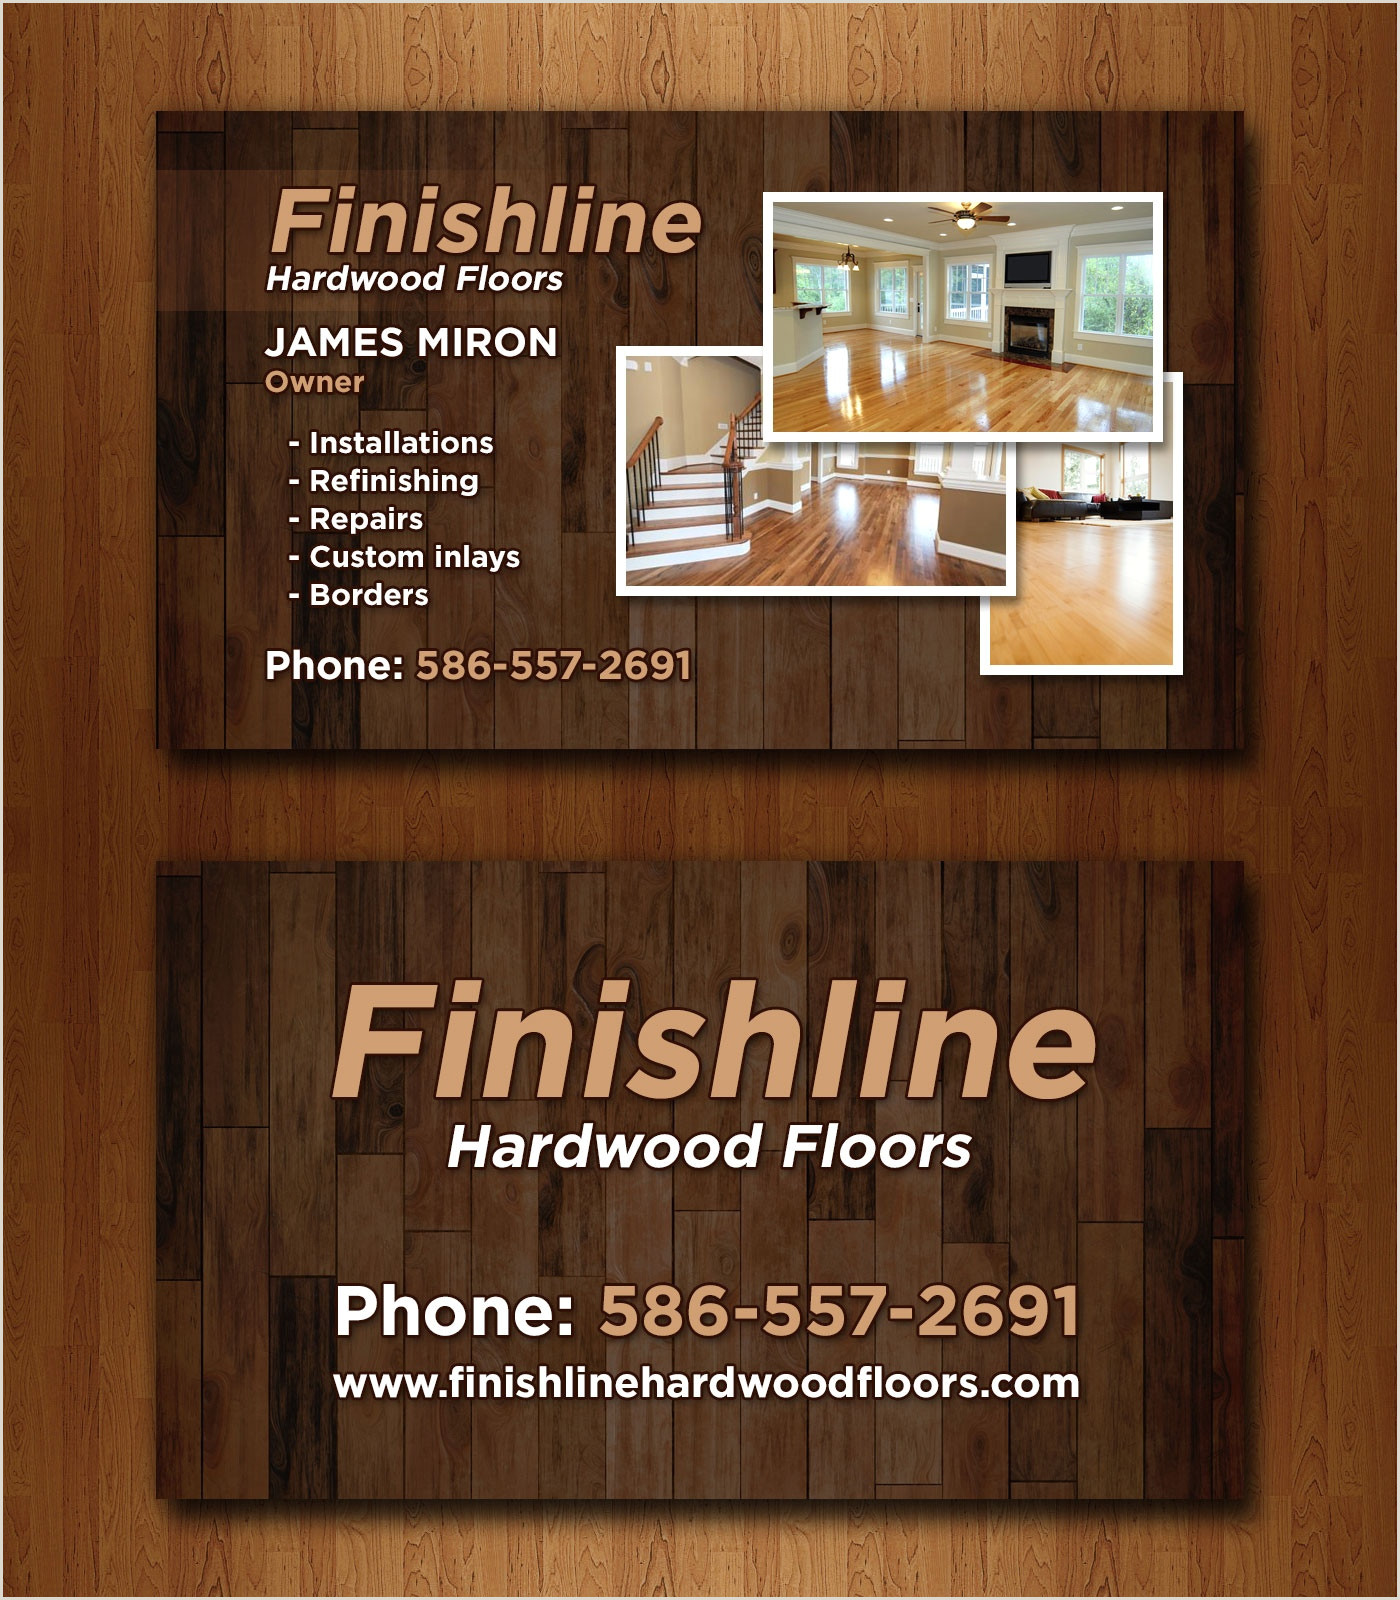 Business Cards For House Cleaning Examples 14 Popular Hardwood Flooring Business Card Template